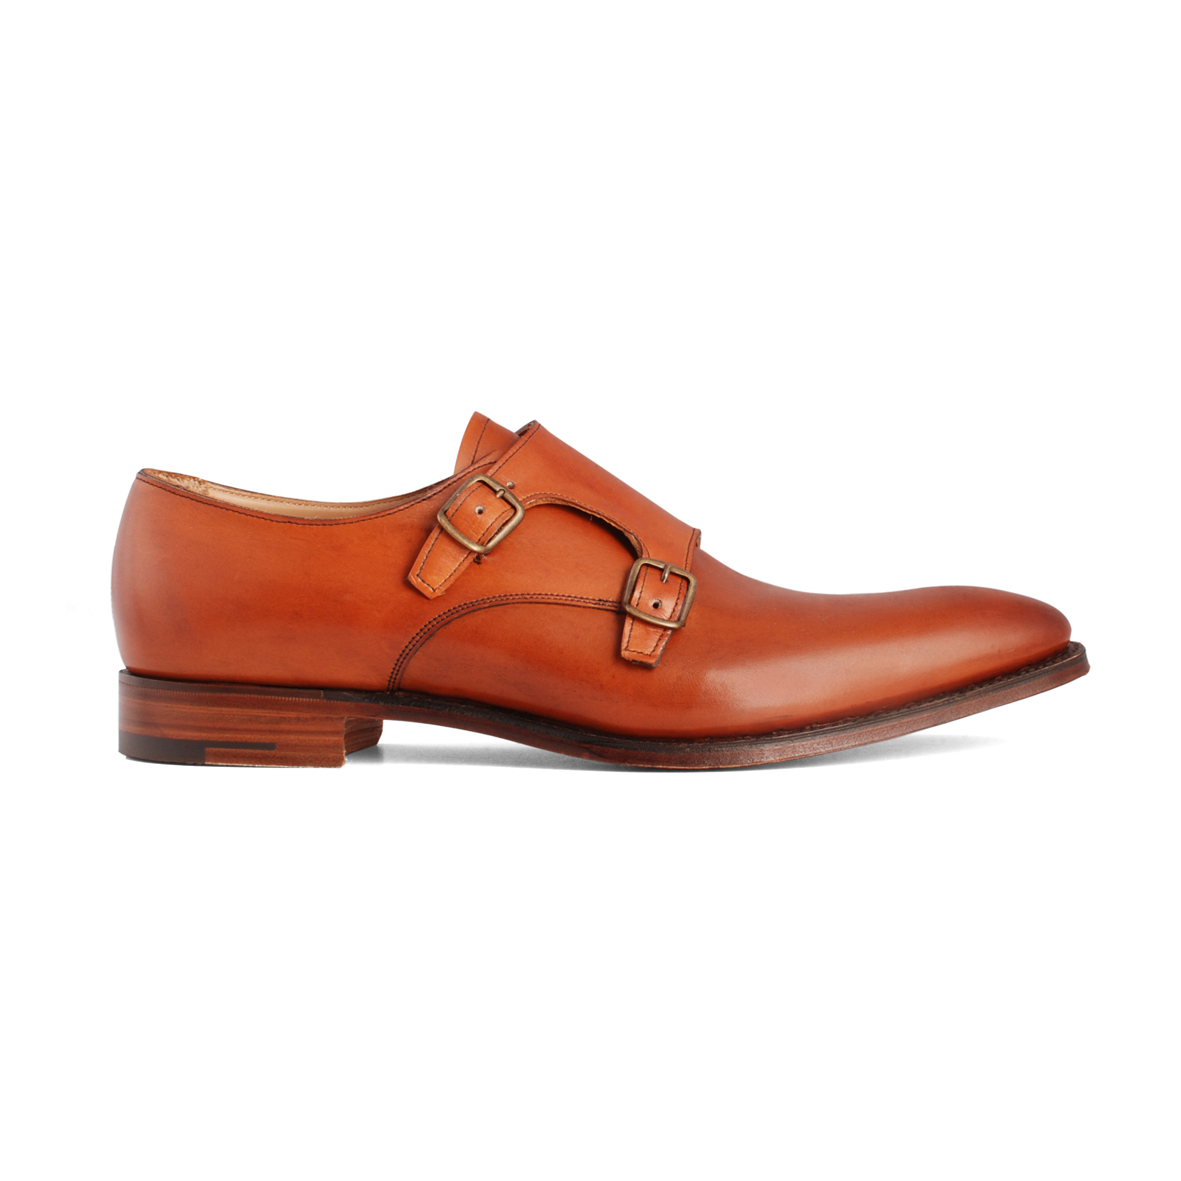 Cheaney Tiverton Dark Leaf shoes